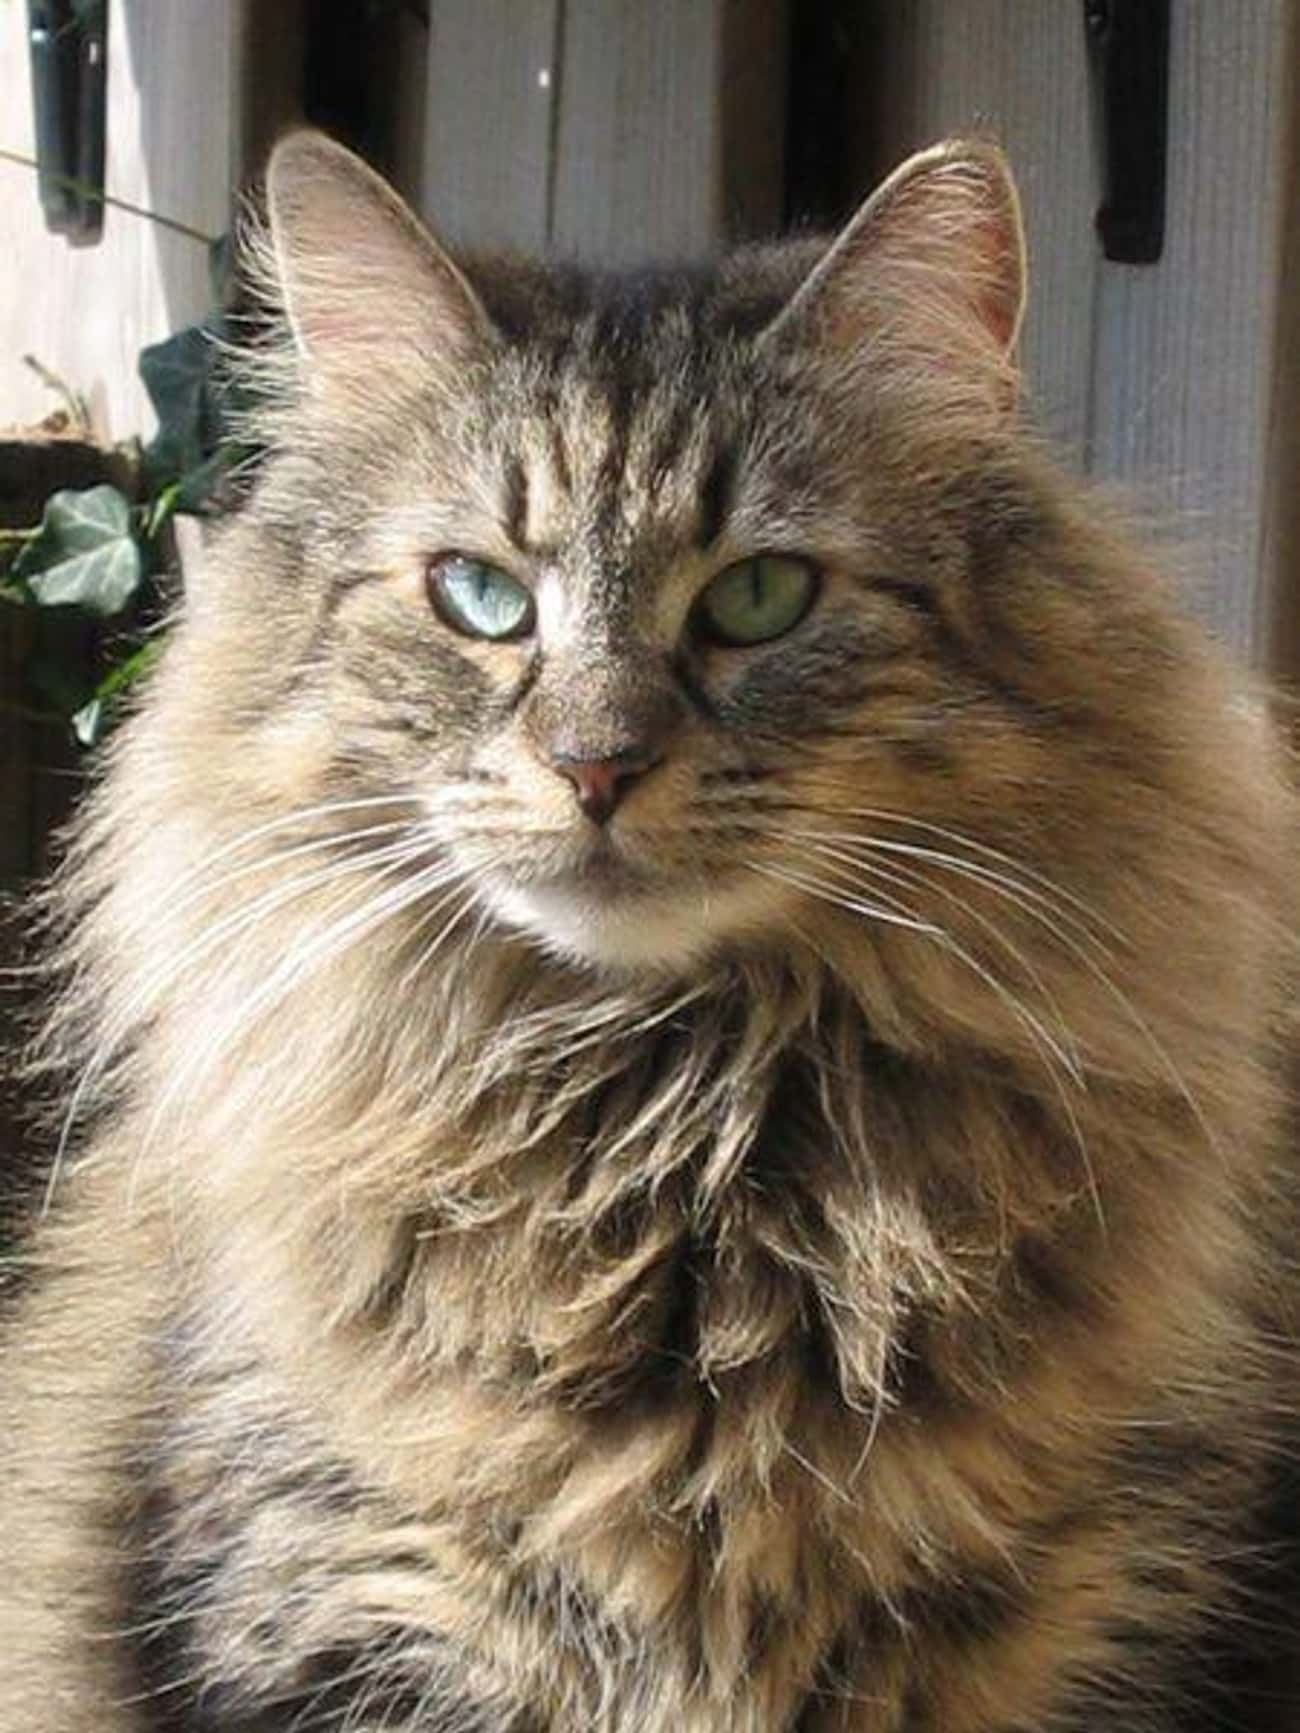 Norwegian Forest Cat is listed (or ranked) 2 on the list The Best Long-Haired Cat Breeds